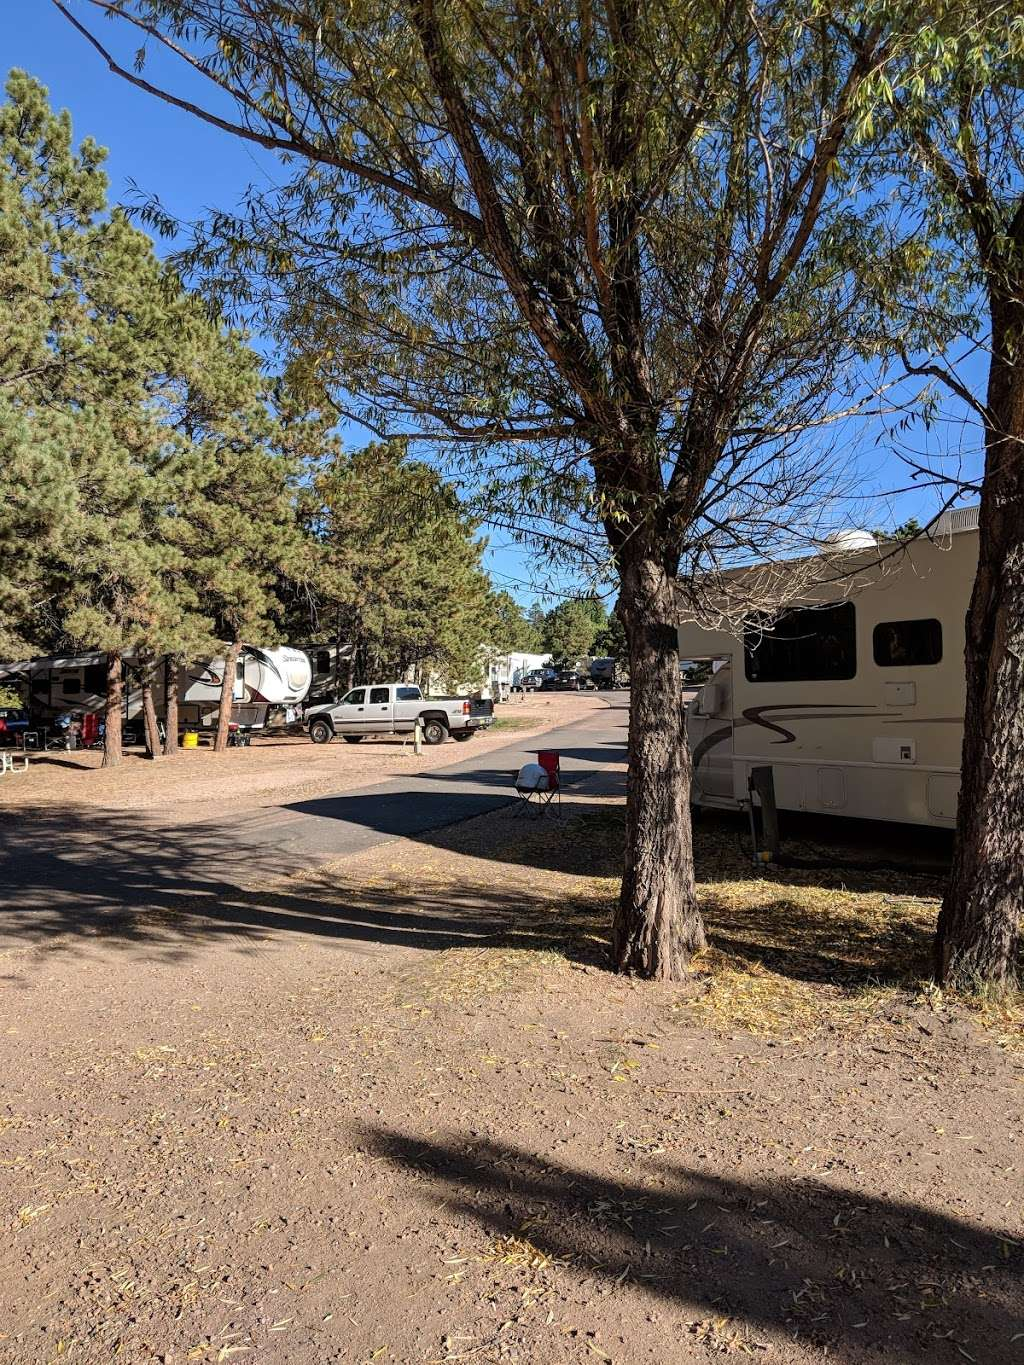 Colorado Heights Camping Resort - campground  | Photo 3 of 10 | Address: 19575 Monument Hill Rd, Monument, CO 80132, USA | Phone: (719) 481-2336